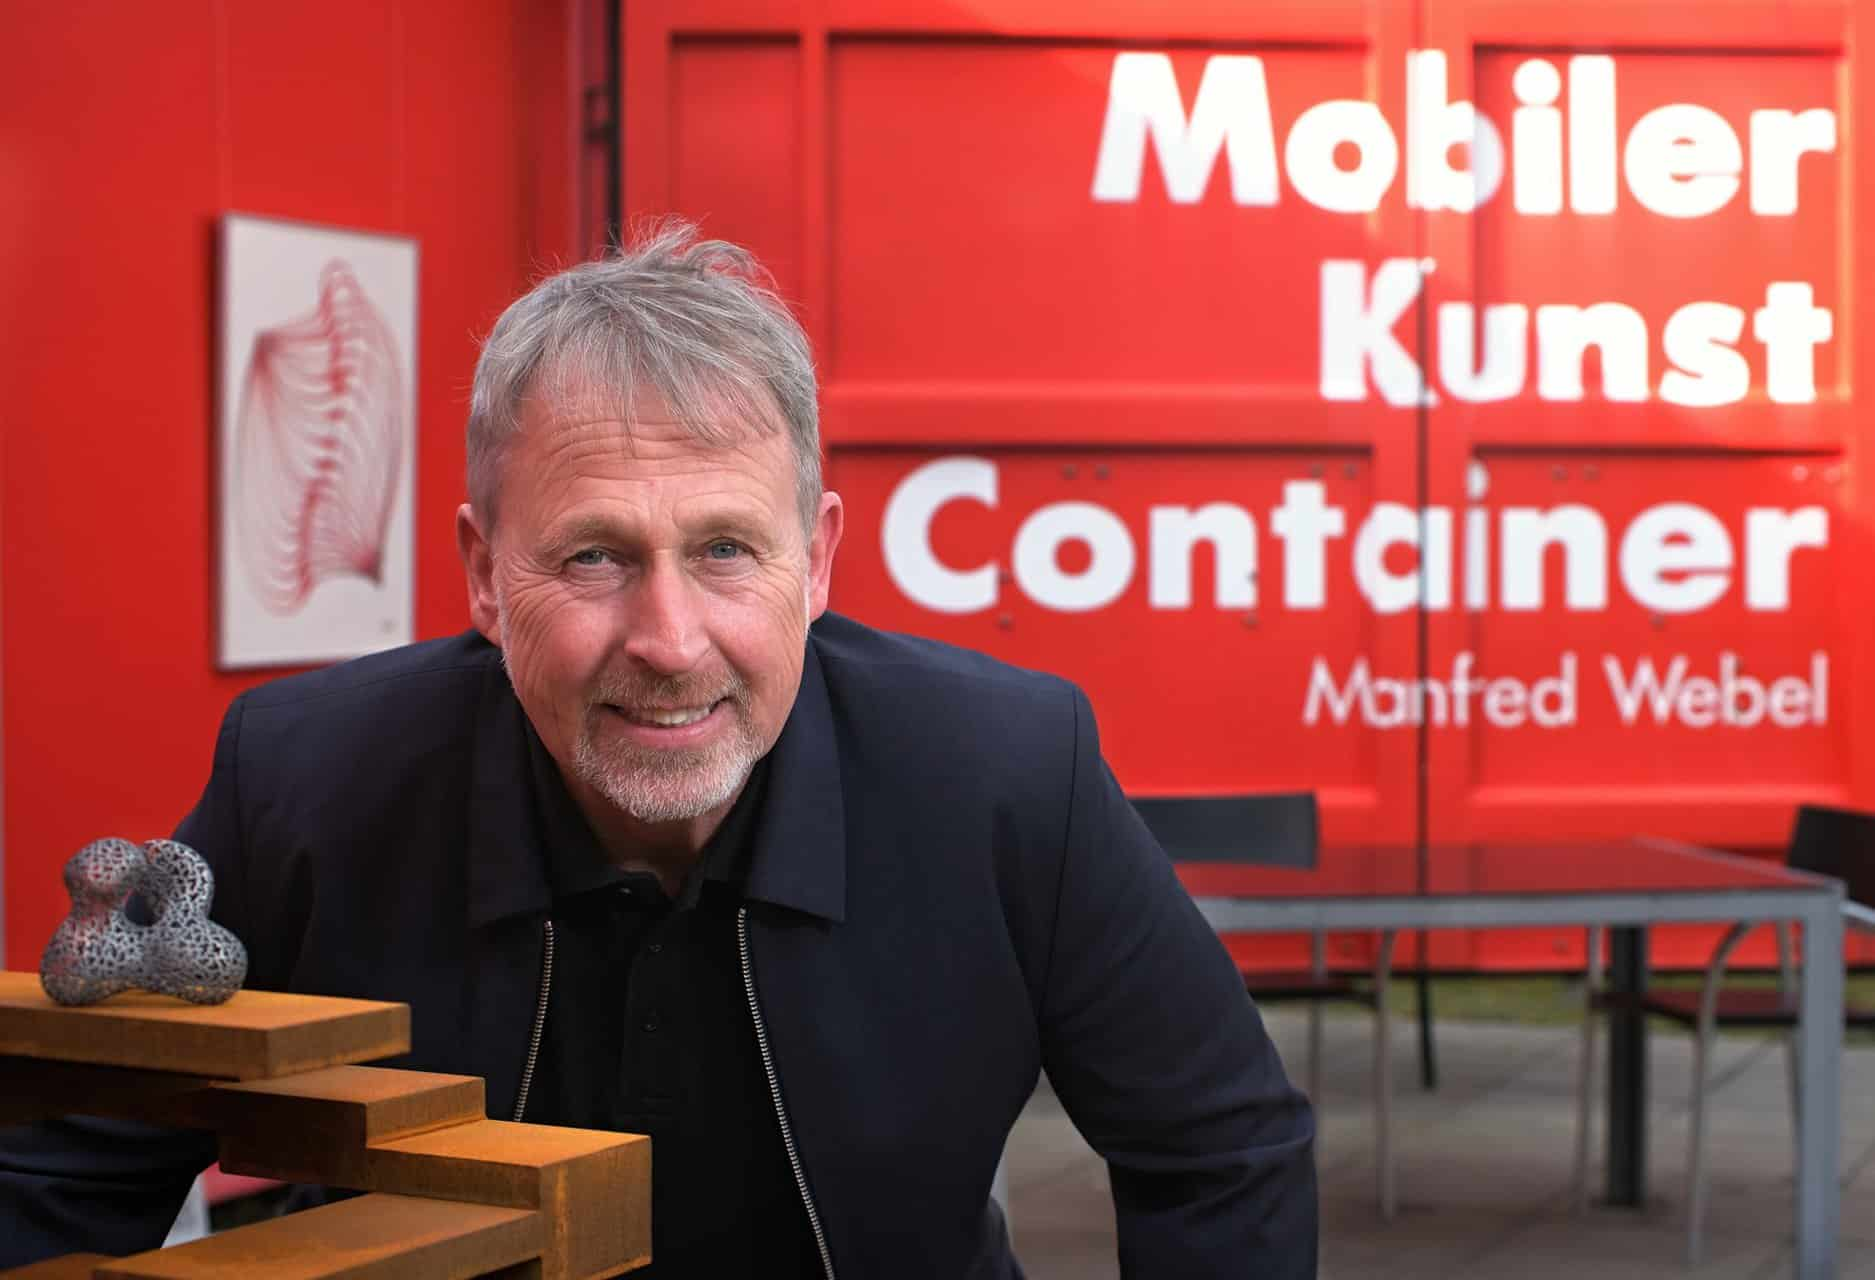 manfred webel Kunst-Container